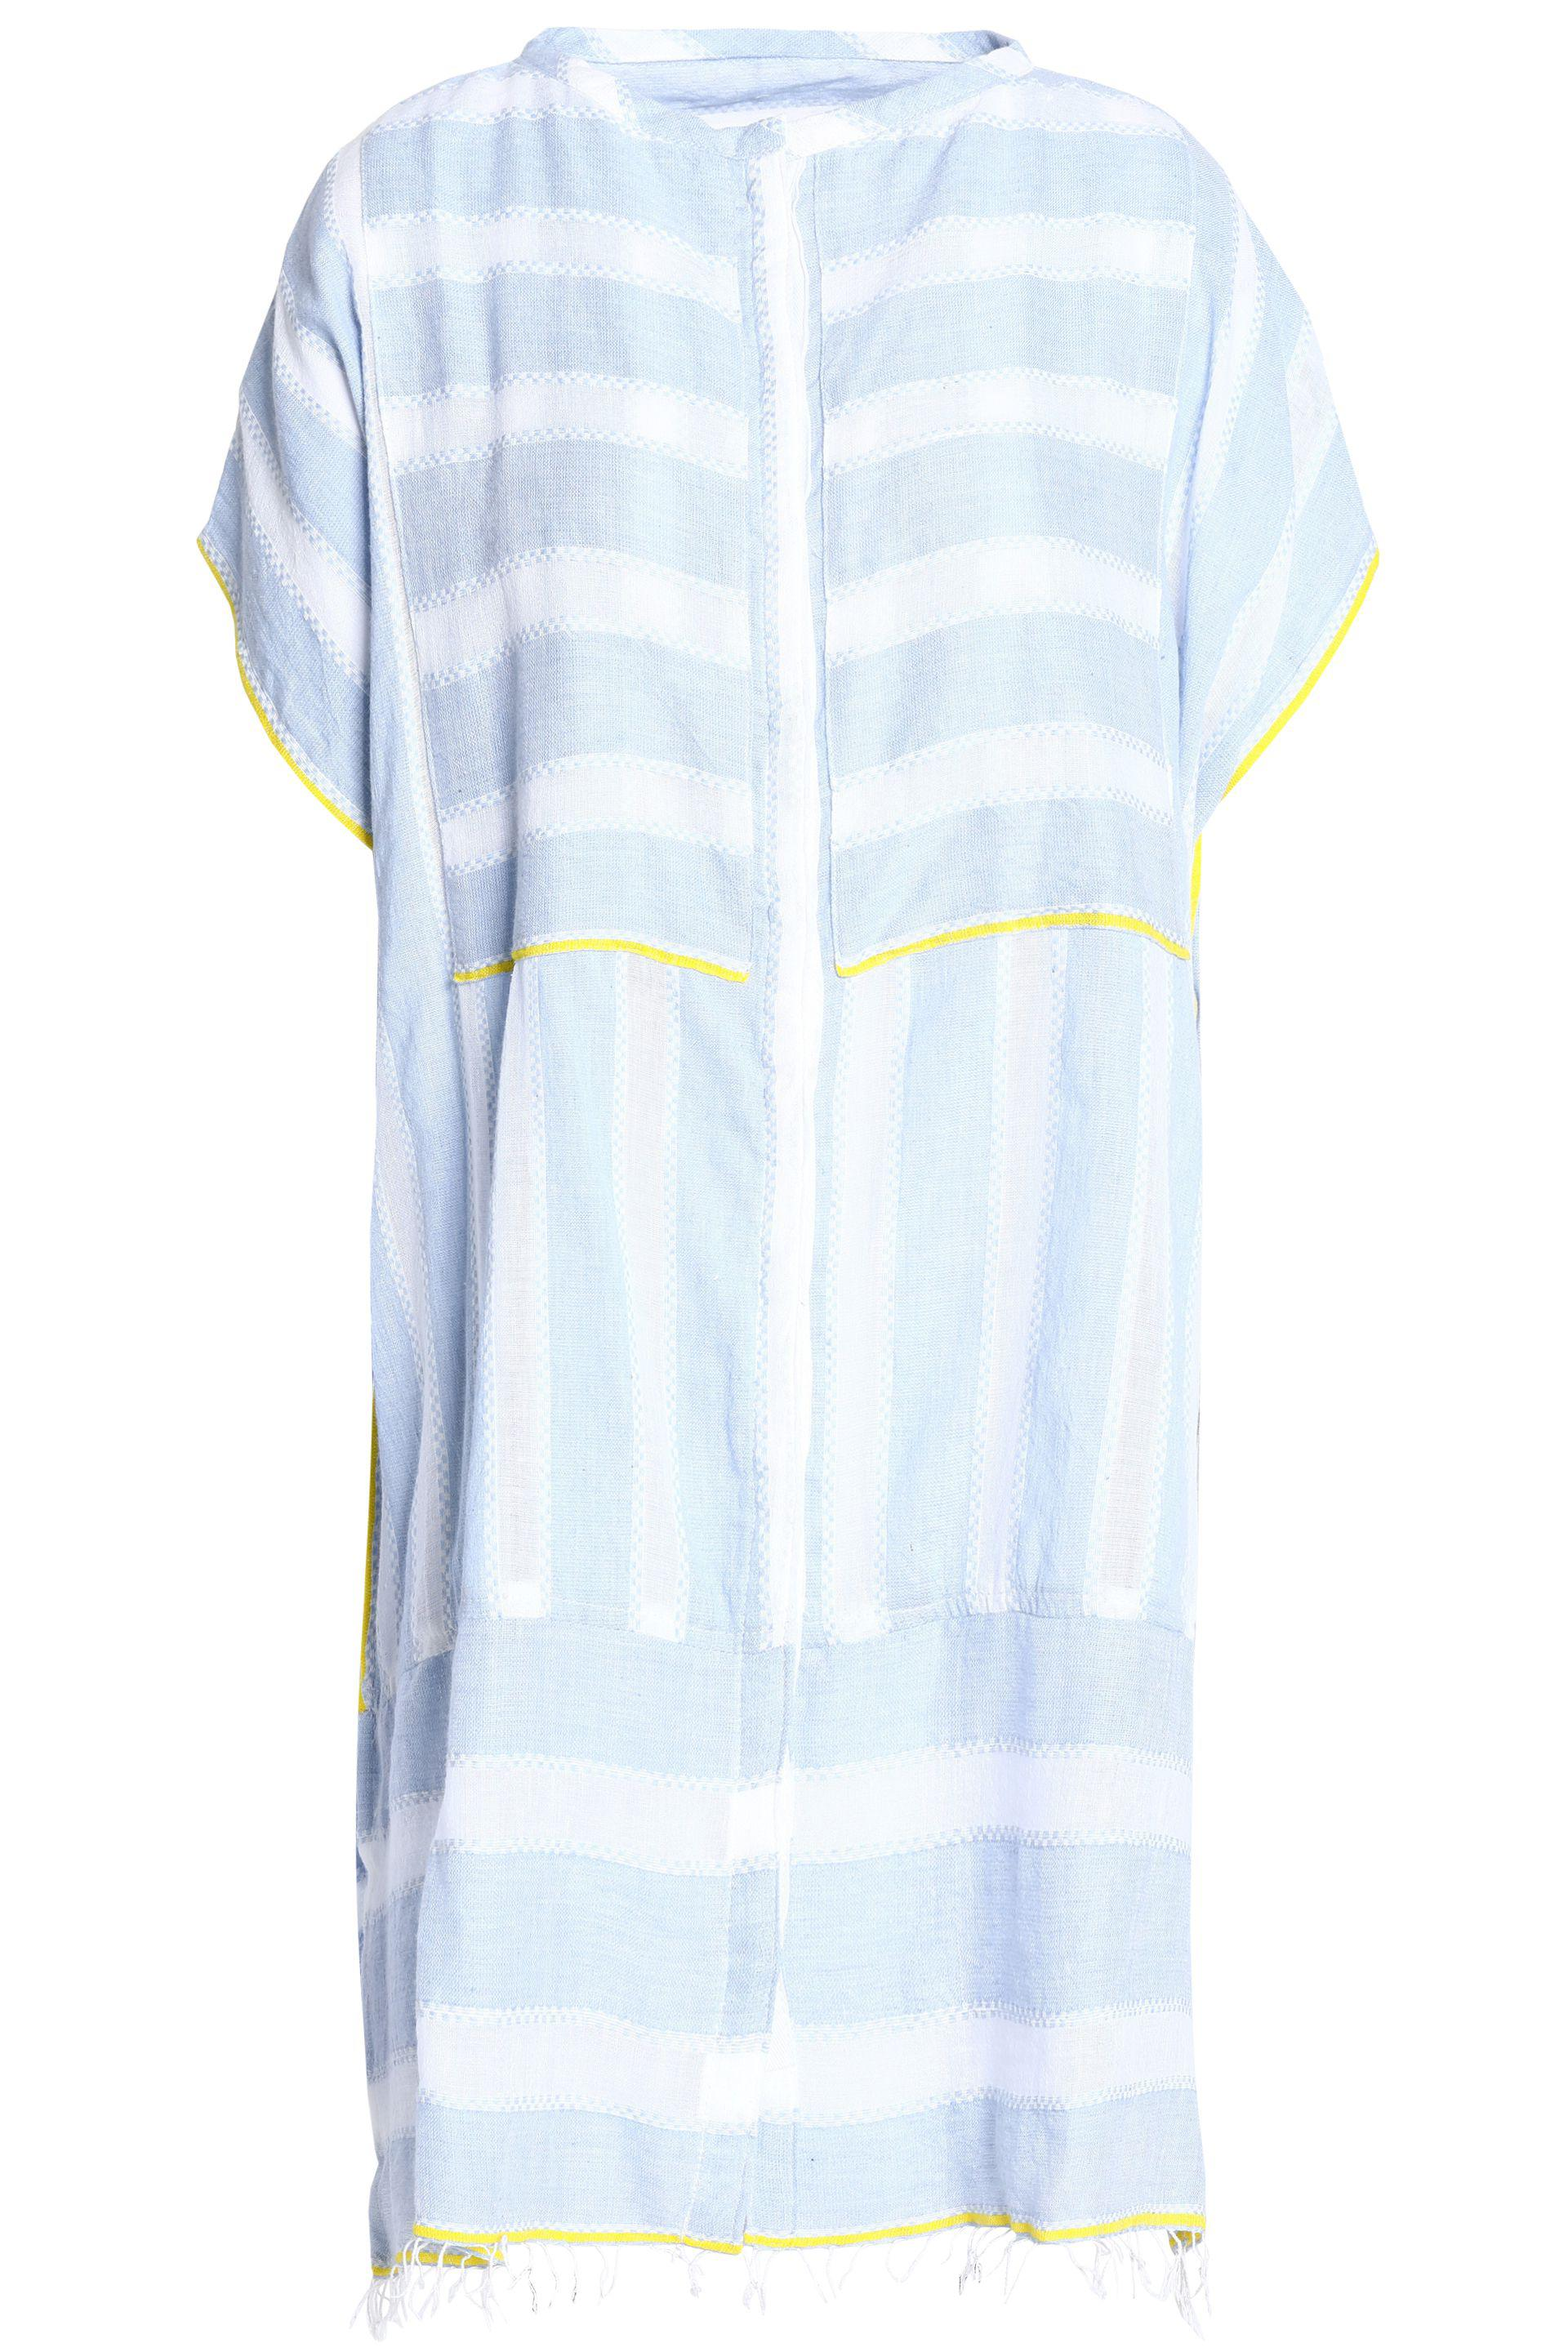 Lemlem Woman Off-the-shoulder Striped Cotton-gauze Coverup Sky Blue Size XS Lemlem Cheap Real Finishline Free Shipping The Cheapest Genuine Online Cheap Official 2018 Newest YcH1E